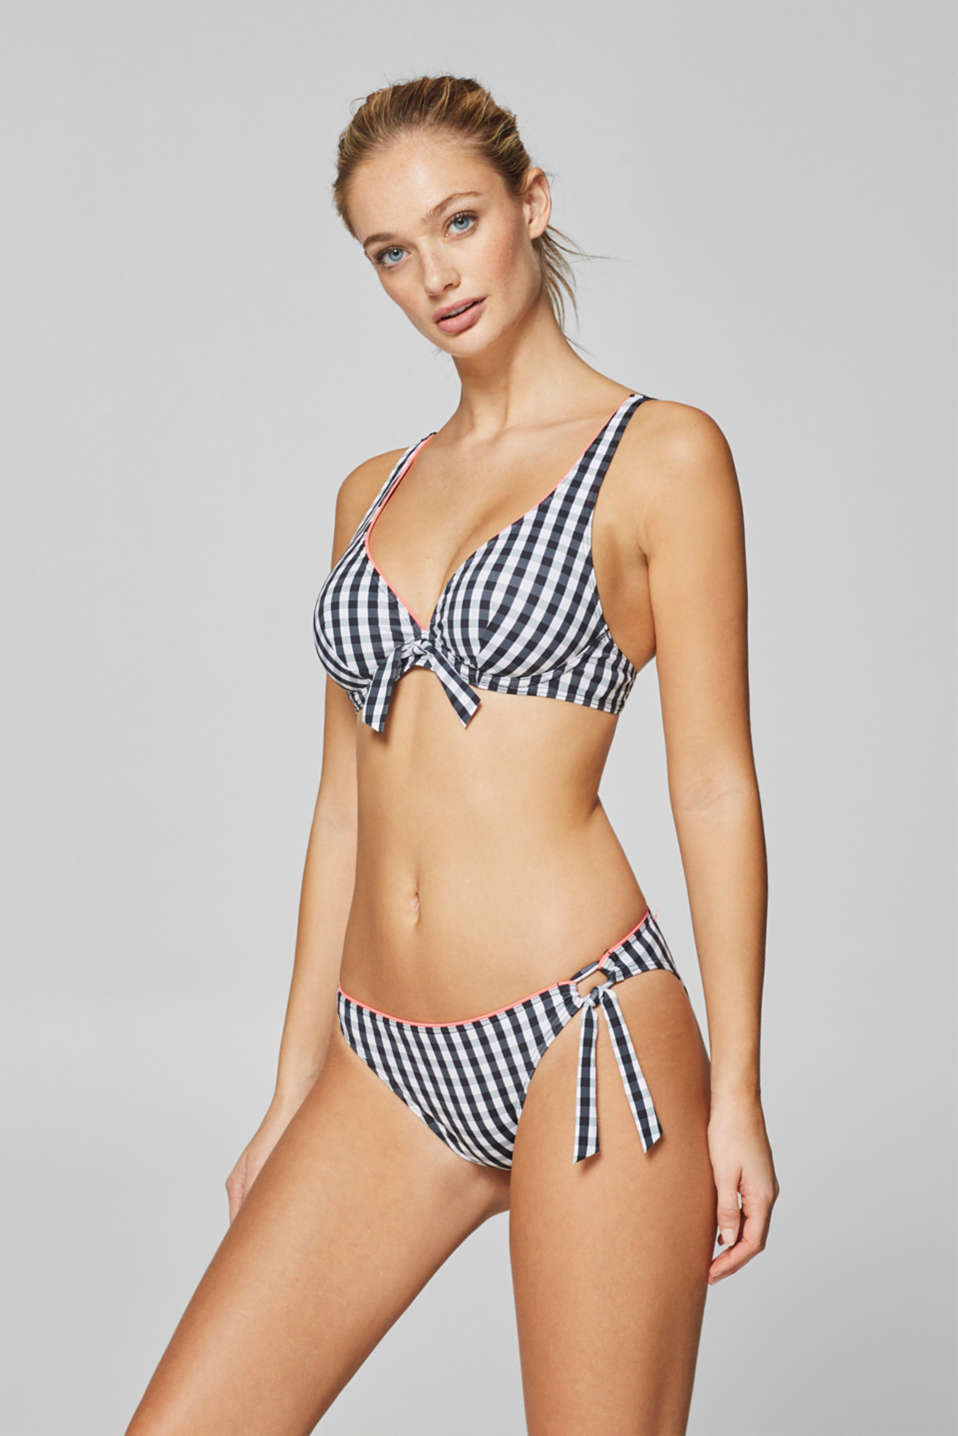 Esprit - Briefs with a gingham check pattern and neon-coloured piping